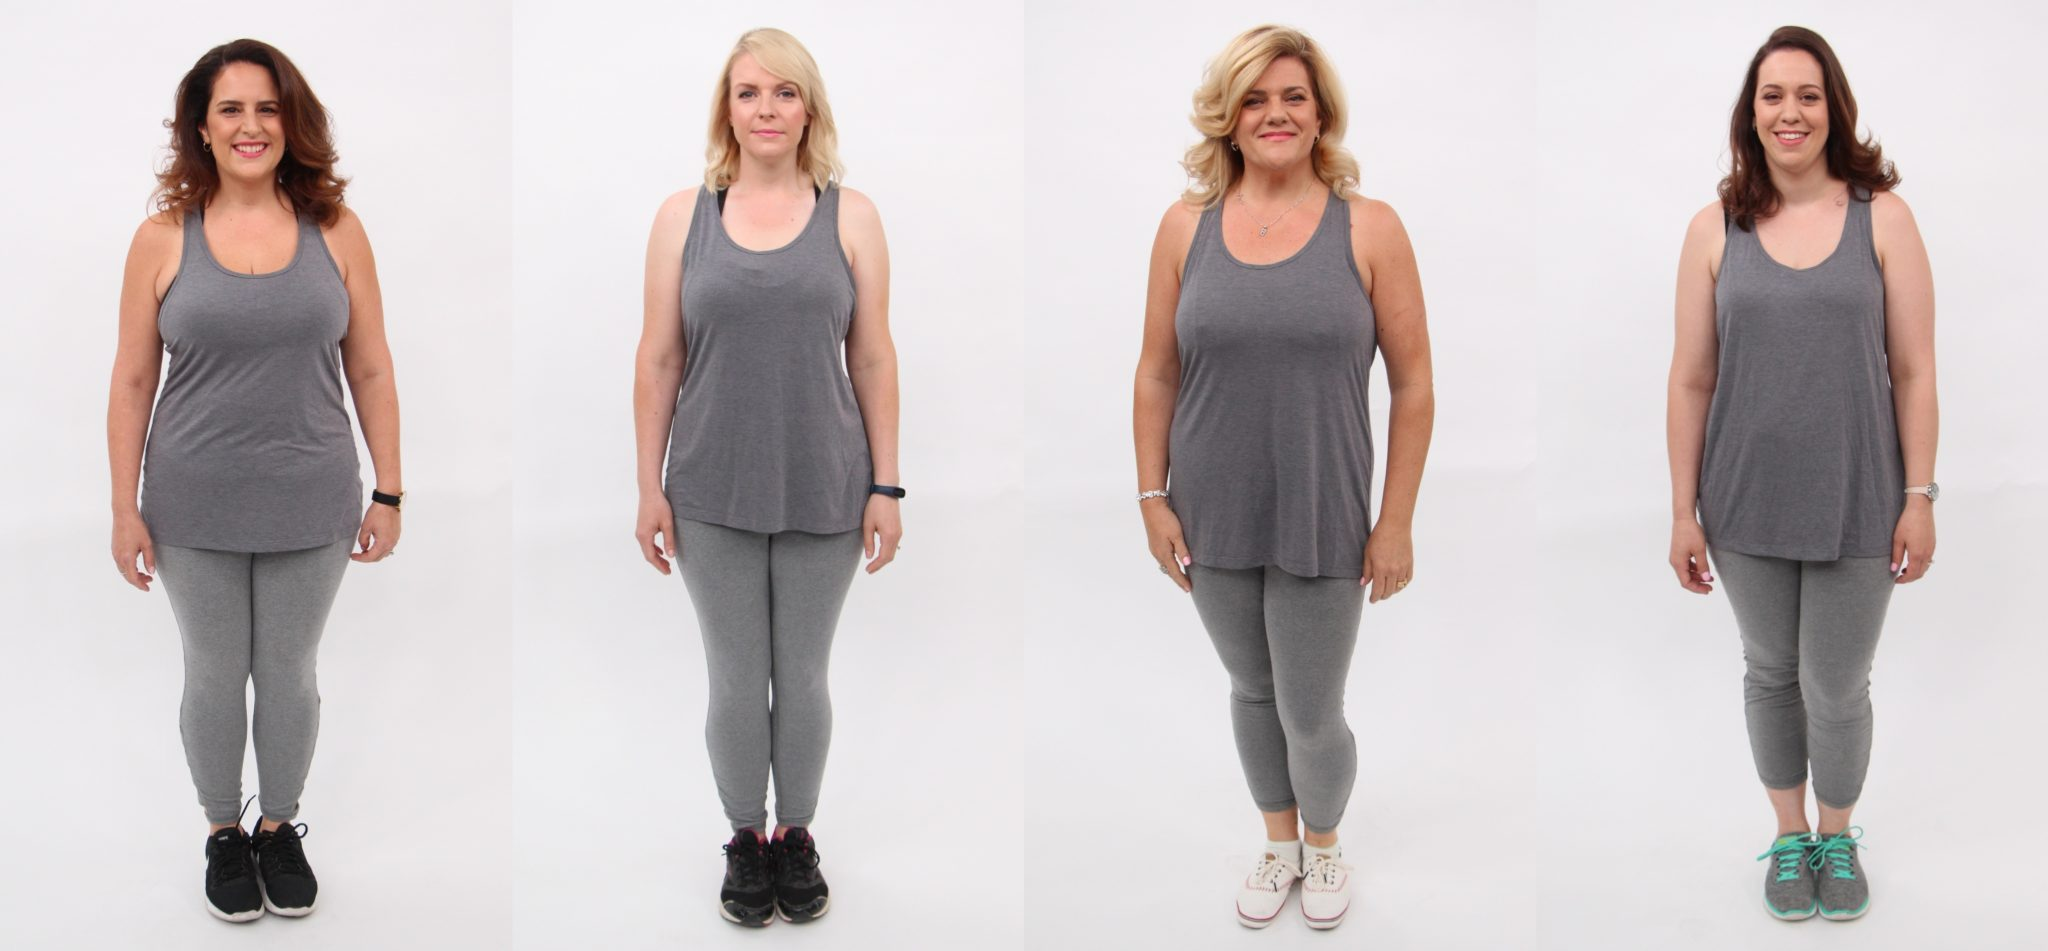 APPLY NOW: Join the 2019 Cityline Weight Loss Challenge with Dr